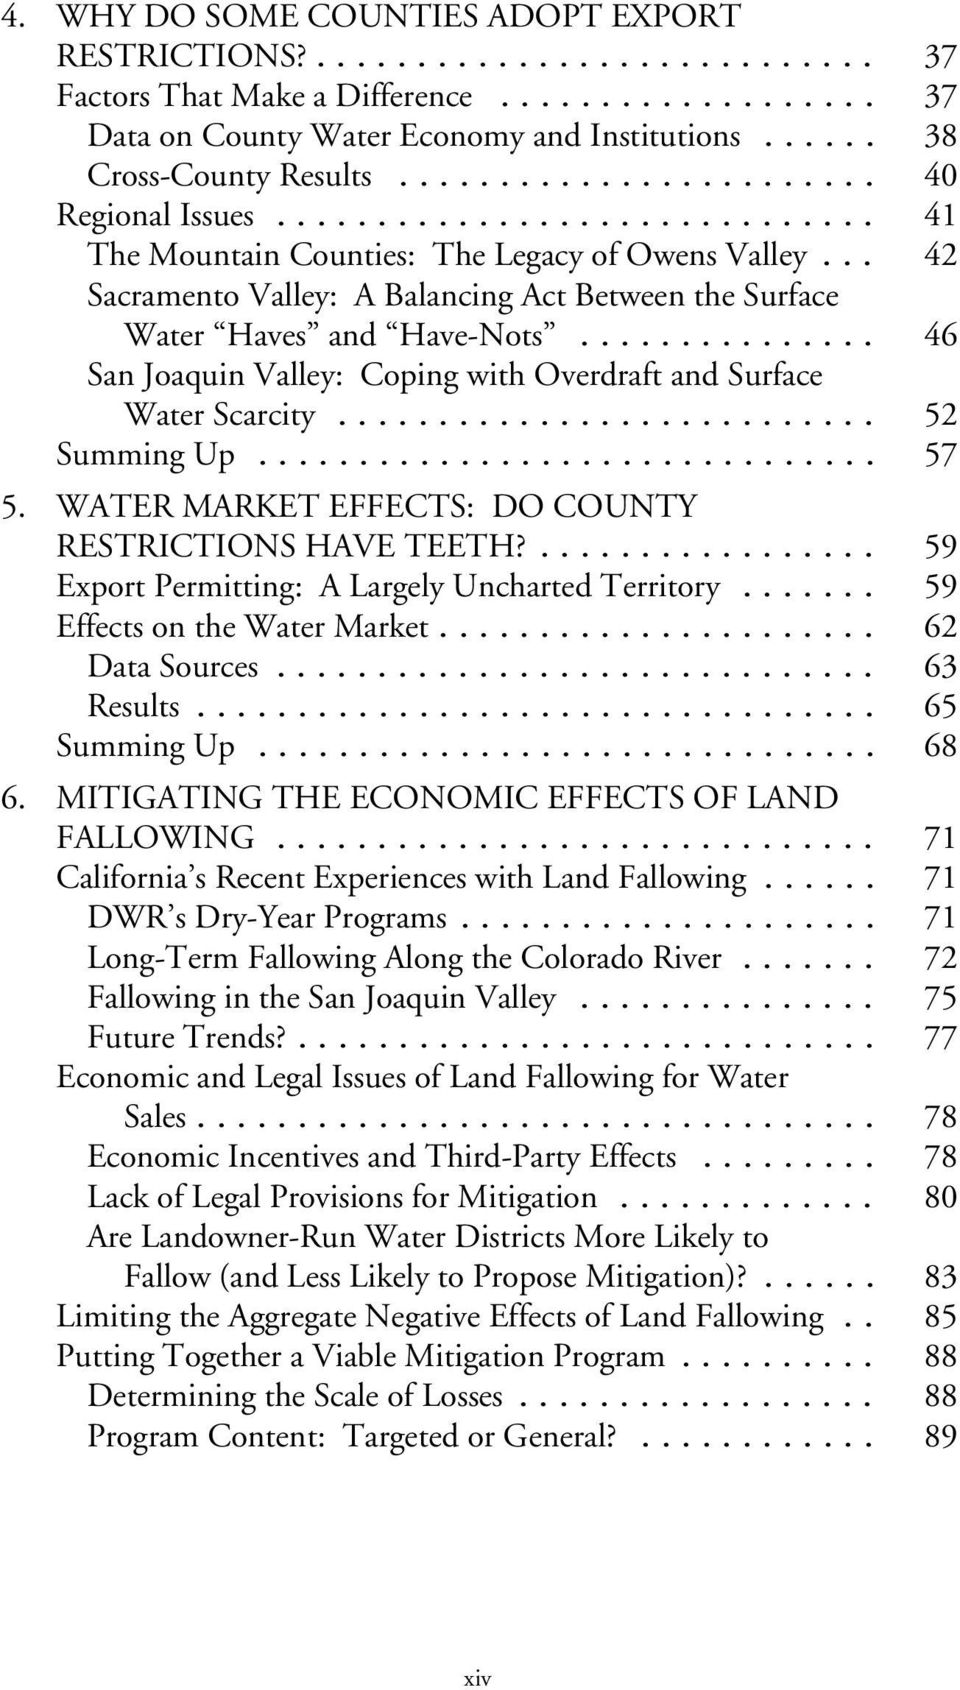 .. 46 San Joaquin Valley: Coping with Overdraft and Surface Water Scarcity... 52 Summing Up... 57 5. WATER MARKET EFFECTS: DO COUNTY RESTRICTIONS HAVE TEETH?